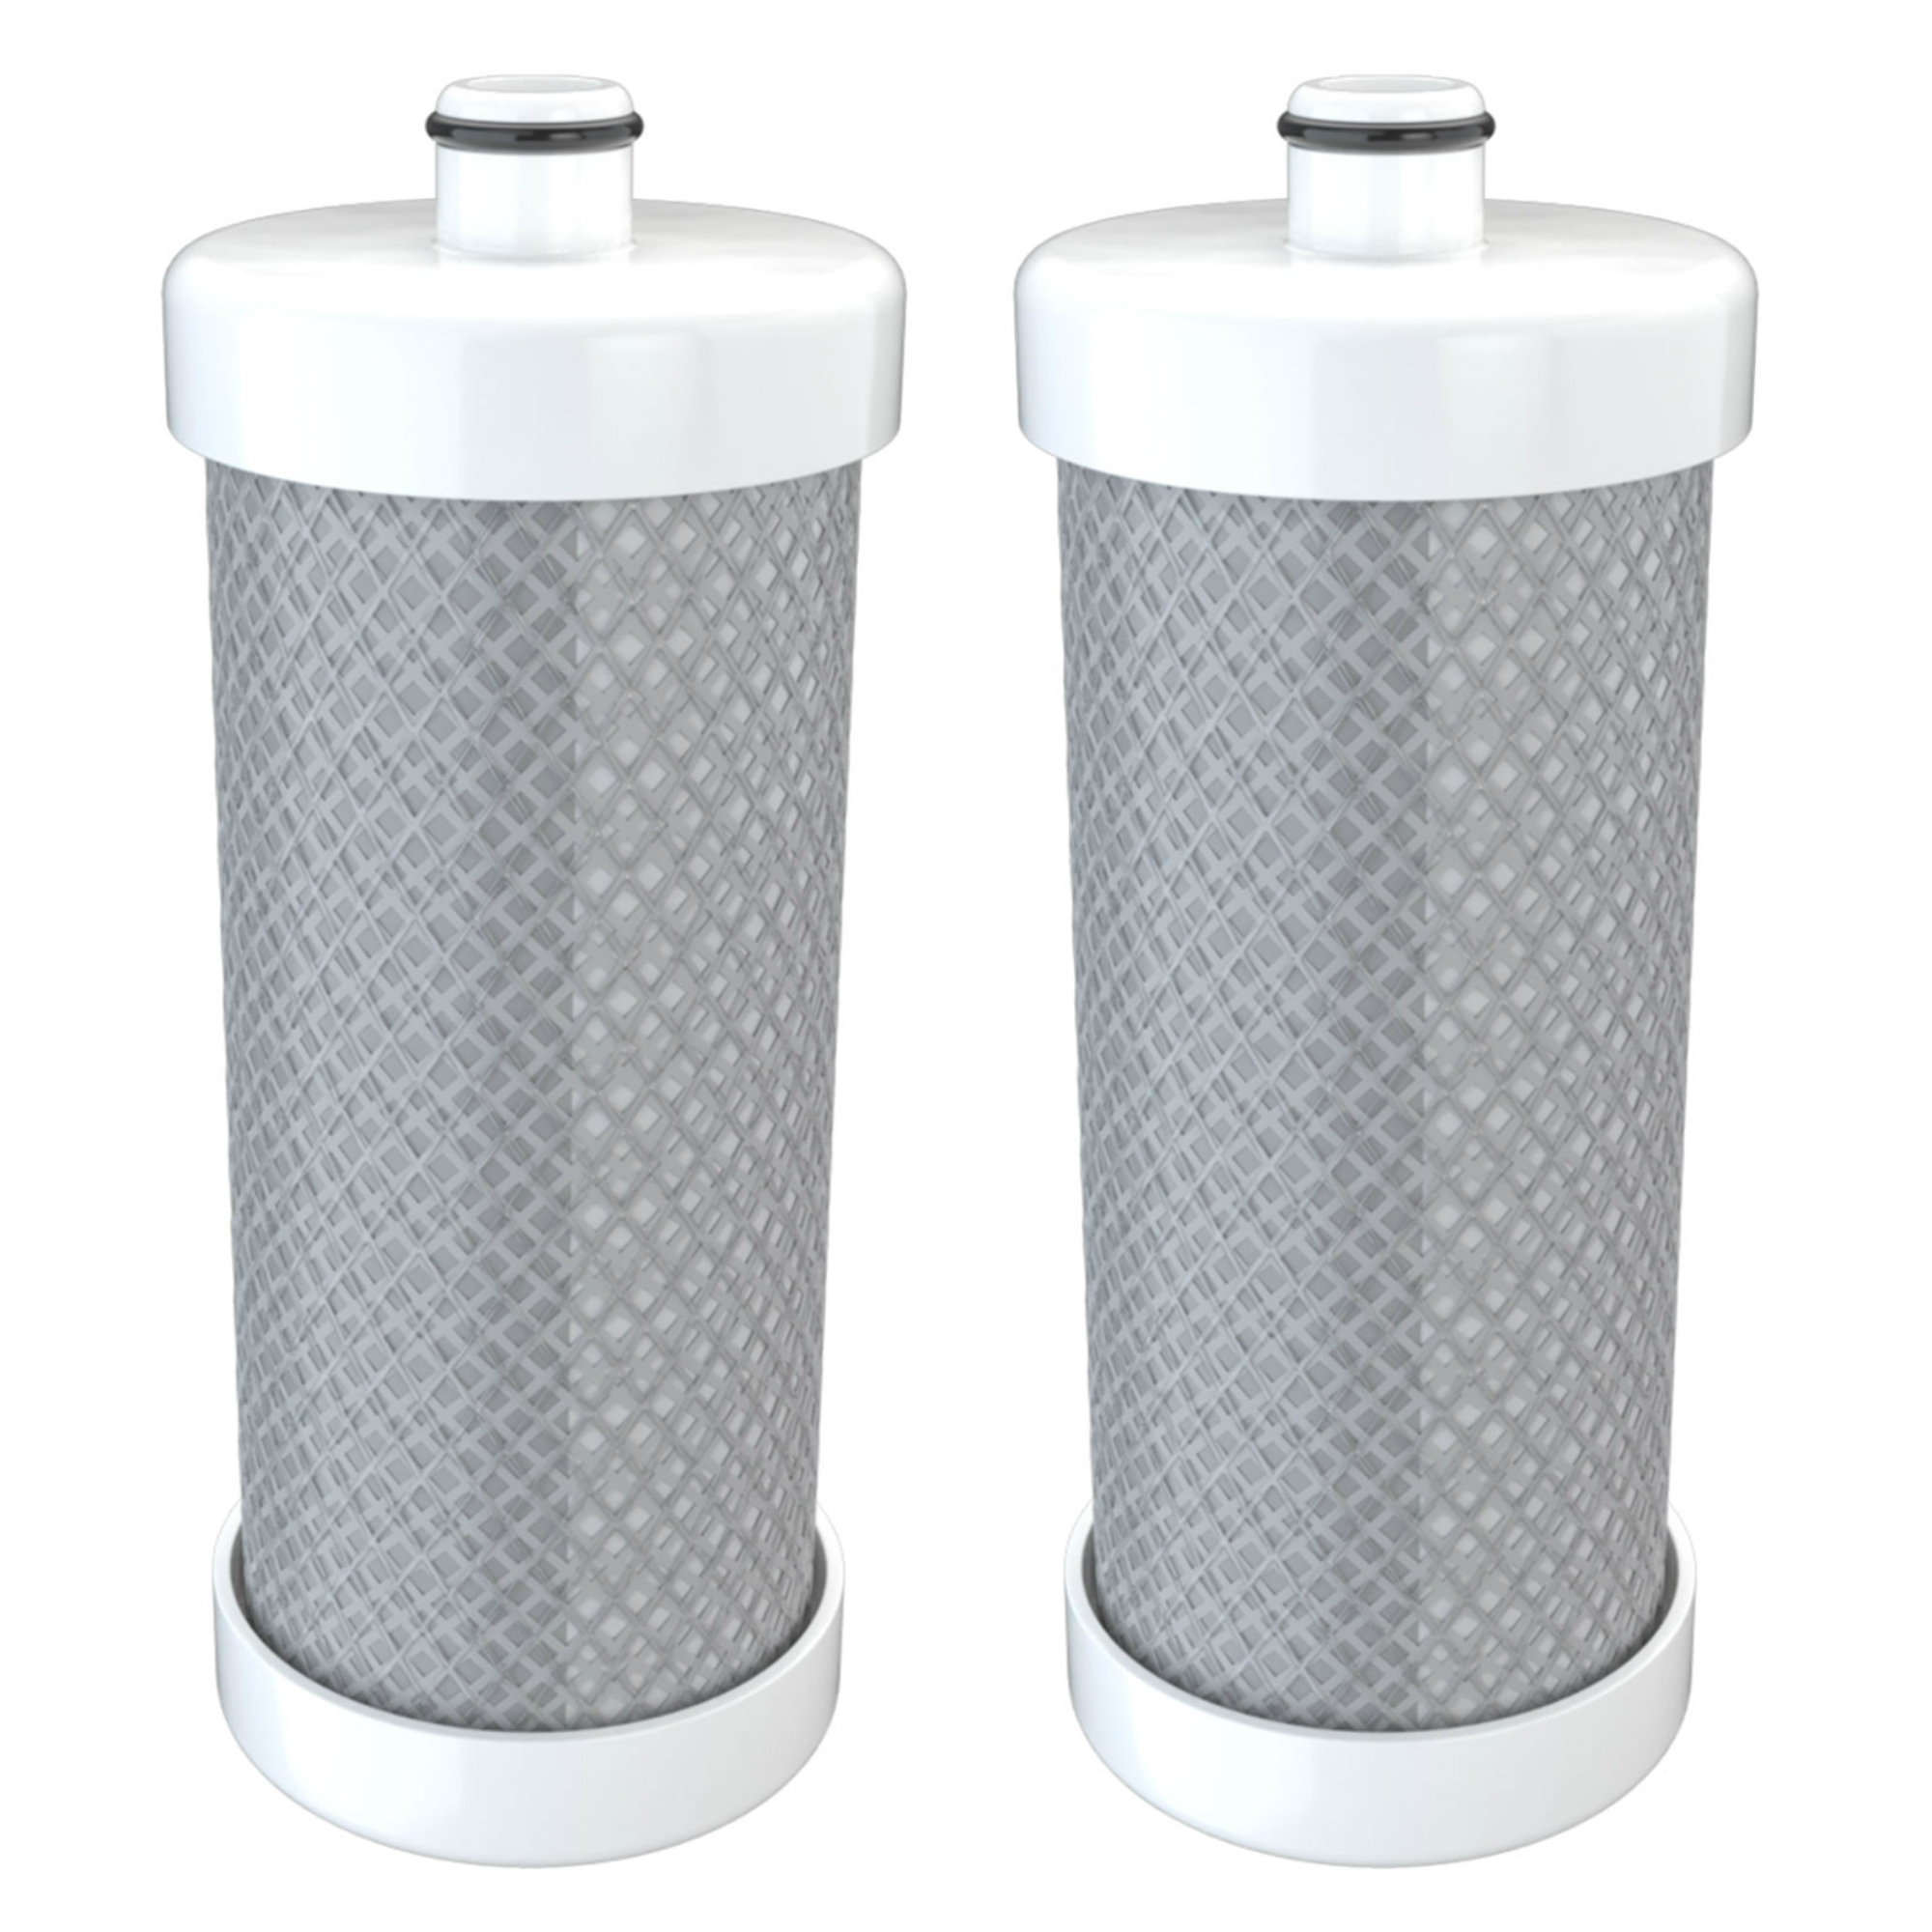 Replacement for Frigidaire WF1CB PureSource WFCB Kenmore 9910 46-9910 Refrigerator Water Filter (2 Pack)